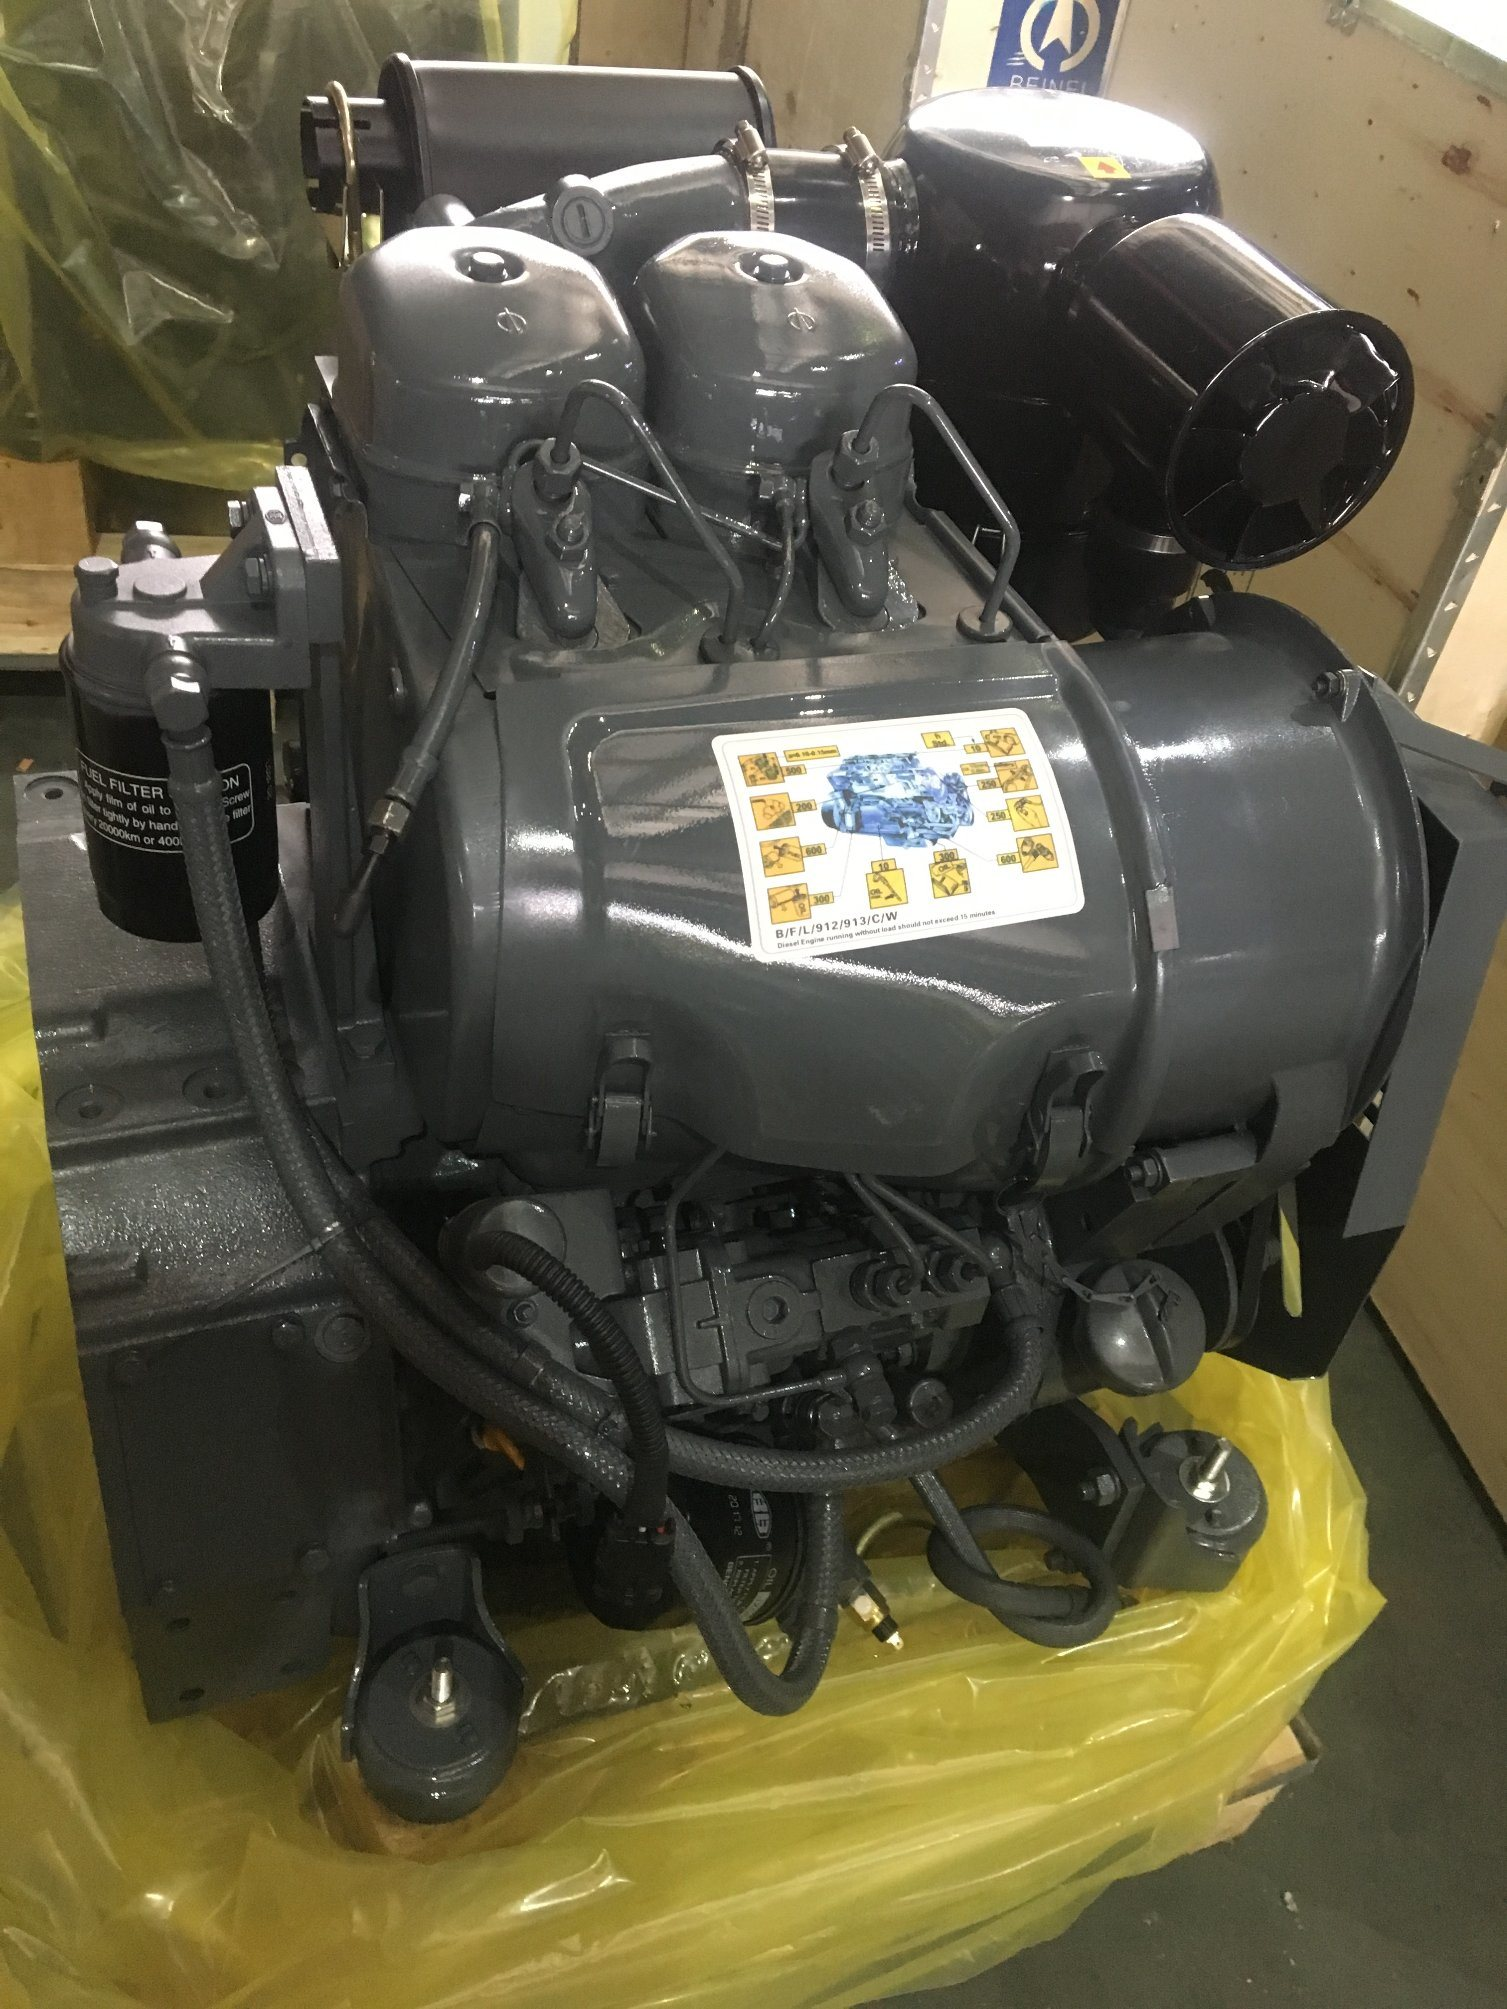 [DIAGRAM_0HG]  China F2l912 Air Cooled Deutz 2 Cylinder Diesel Engine - China Diesel  Generator Set, Diesel Generator | Deutz Air Cooled Wiring Diagram |  | Fujian Xinyabo Power Technology Co., Ltd.